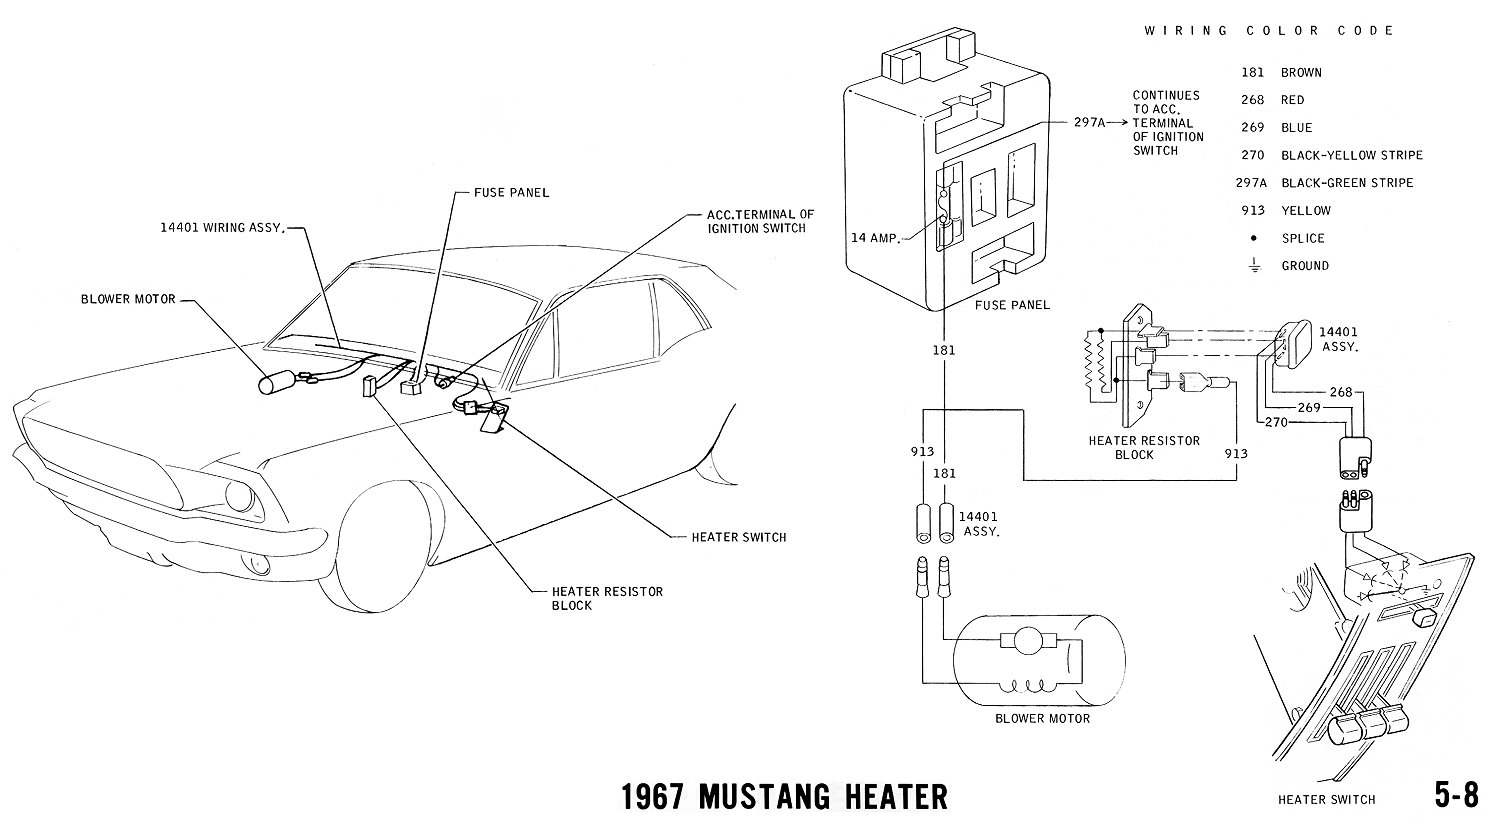 1967 mustang wiring and vacuum diagrams average joe restoration rh averagejoerestoration com 67 mustang fuse box location 67 mustang fuse box diagram